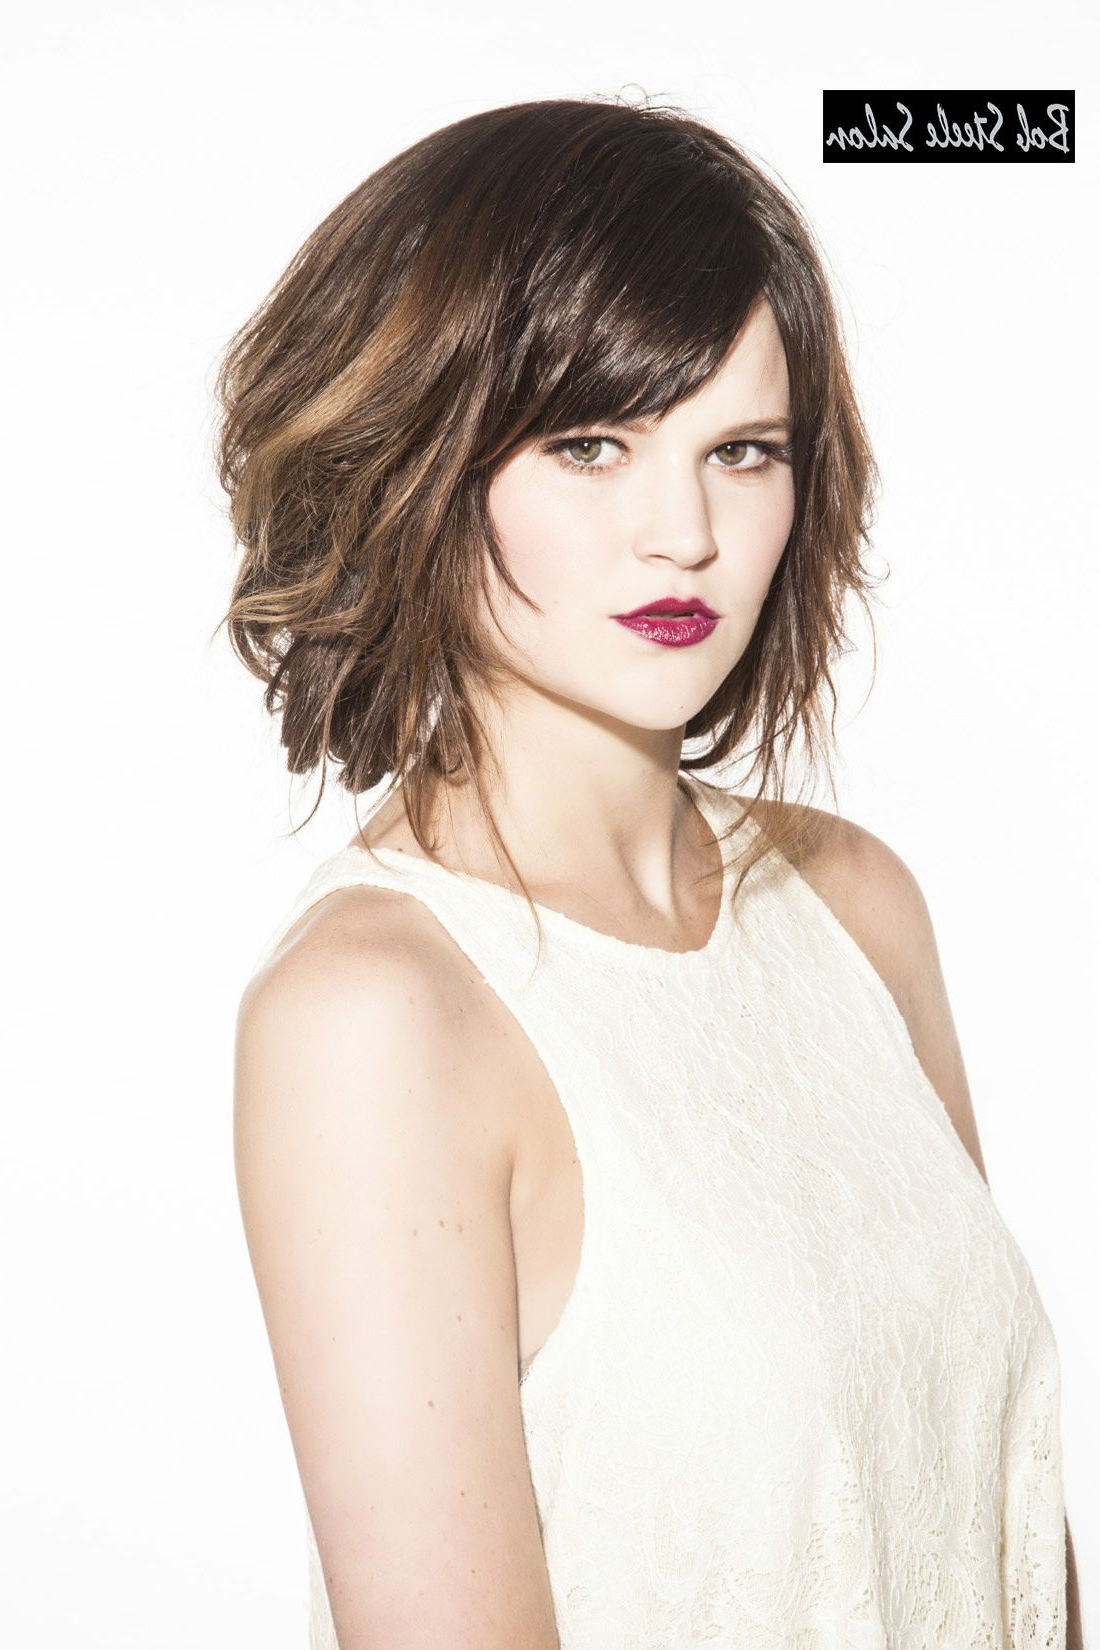 34 Greatest Short Haircuts And Hairstyles For Thick Hair For 2018 With Medium To Short Haircuts For Thick Hair (View 12 of 25)